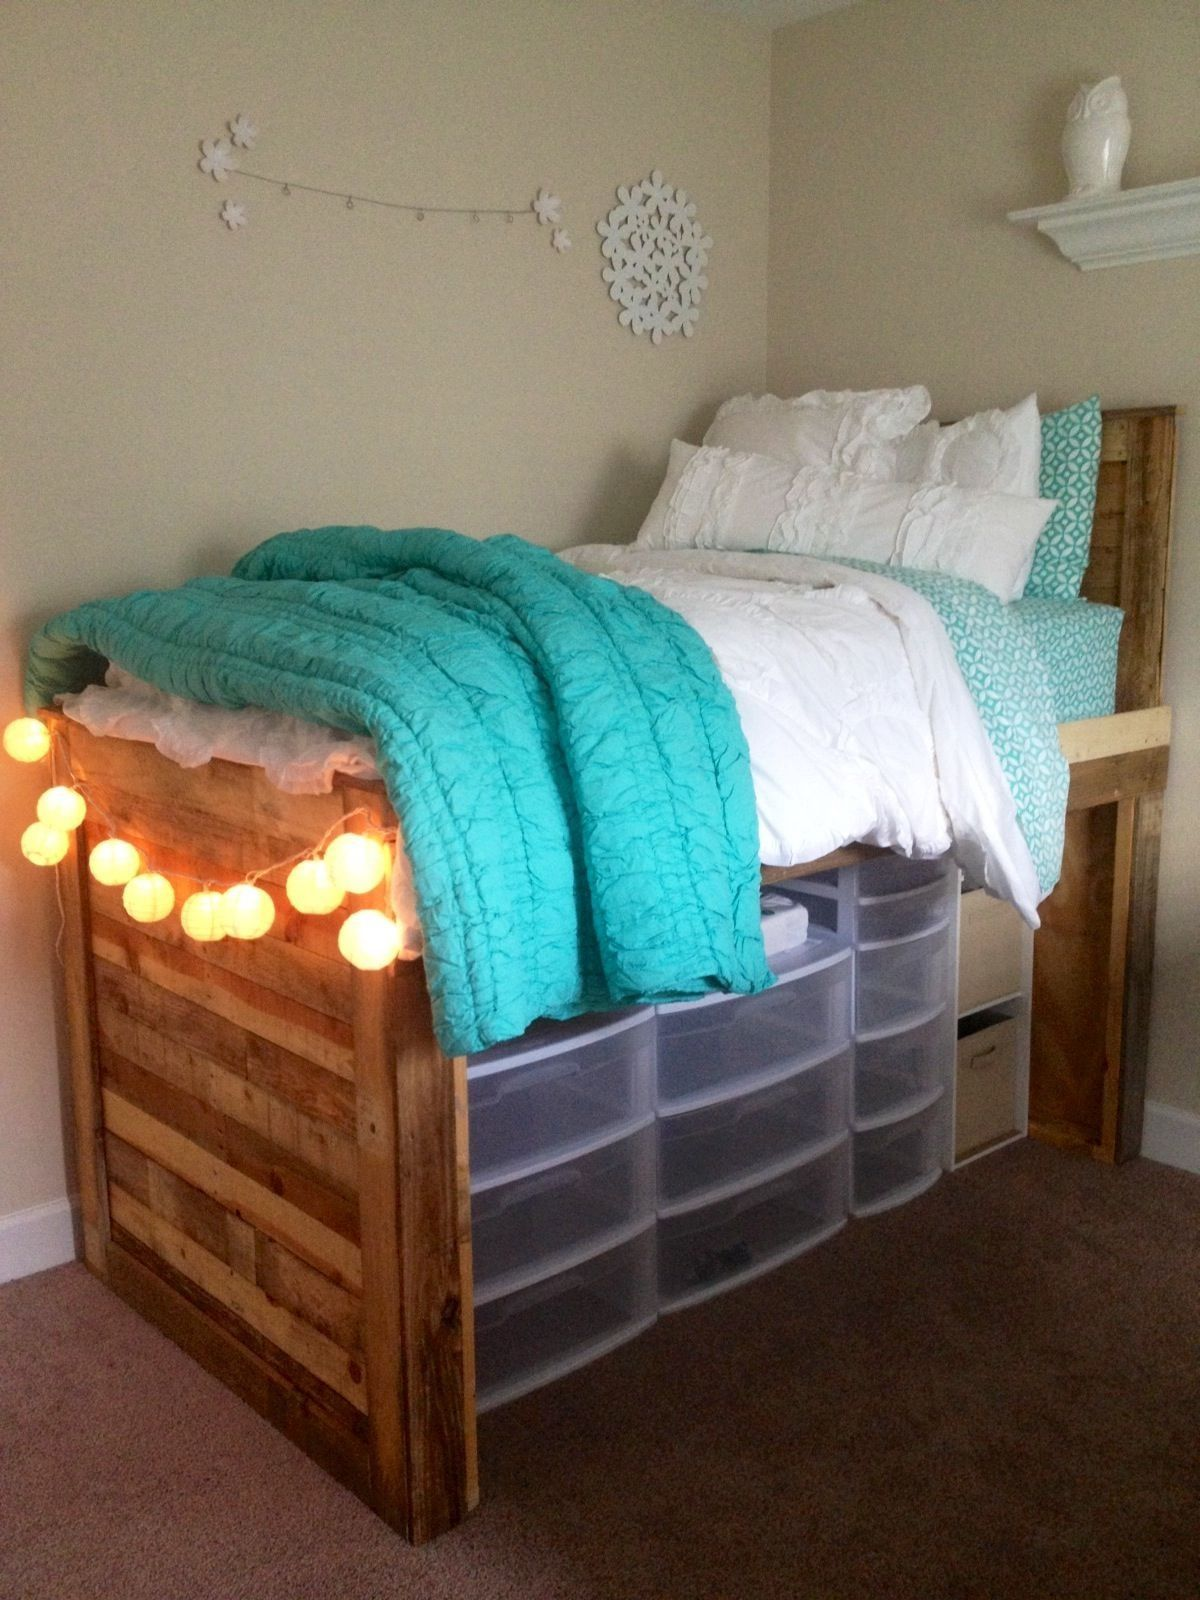 10 Easy Ways to Save Space in Your Dorm Room & 10 Easy Ways to Save Space in Your Dorm Room | High beds Bed ...